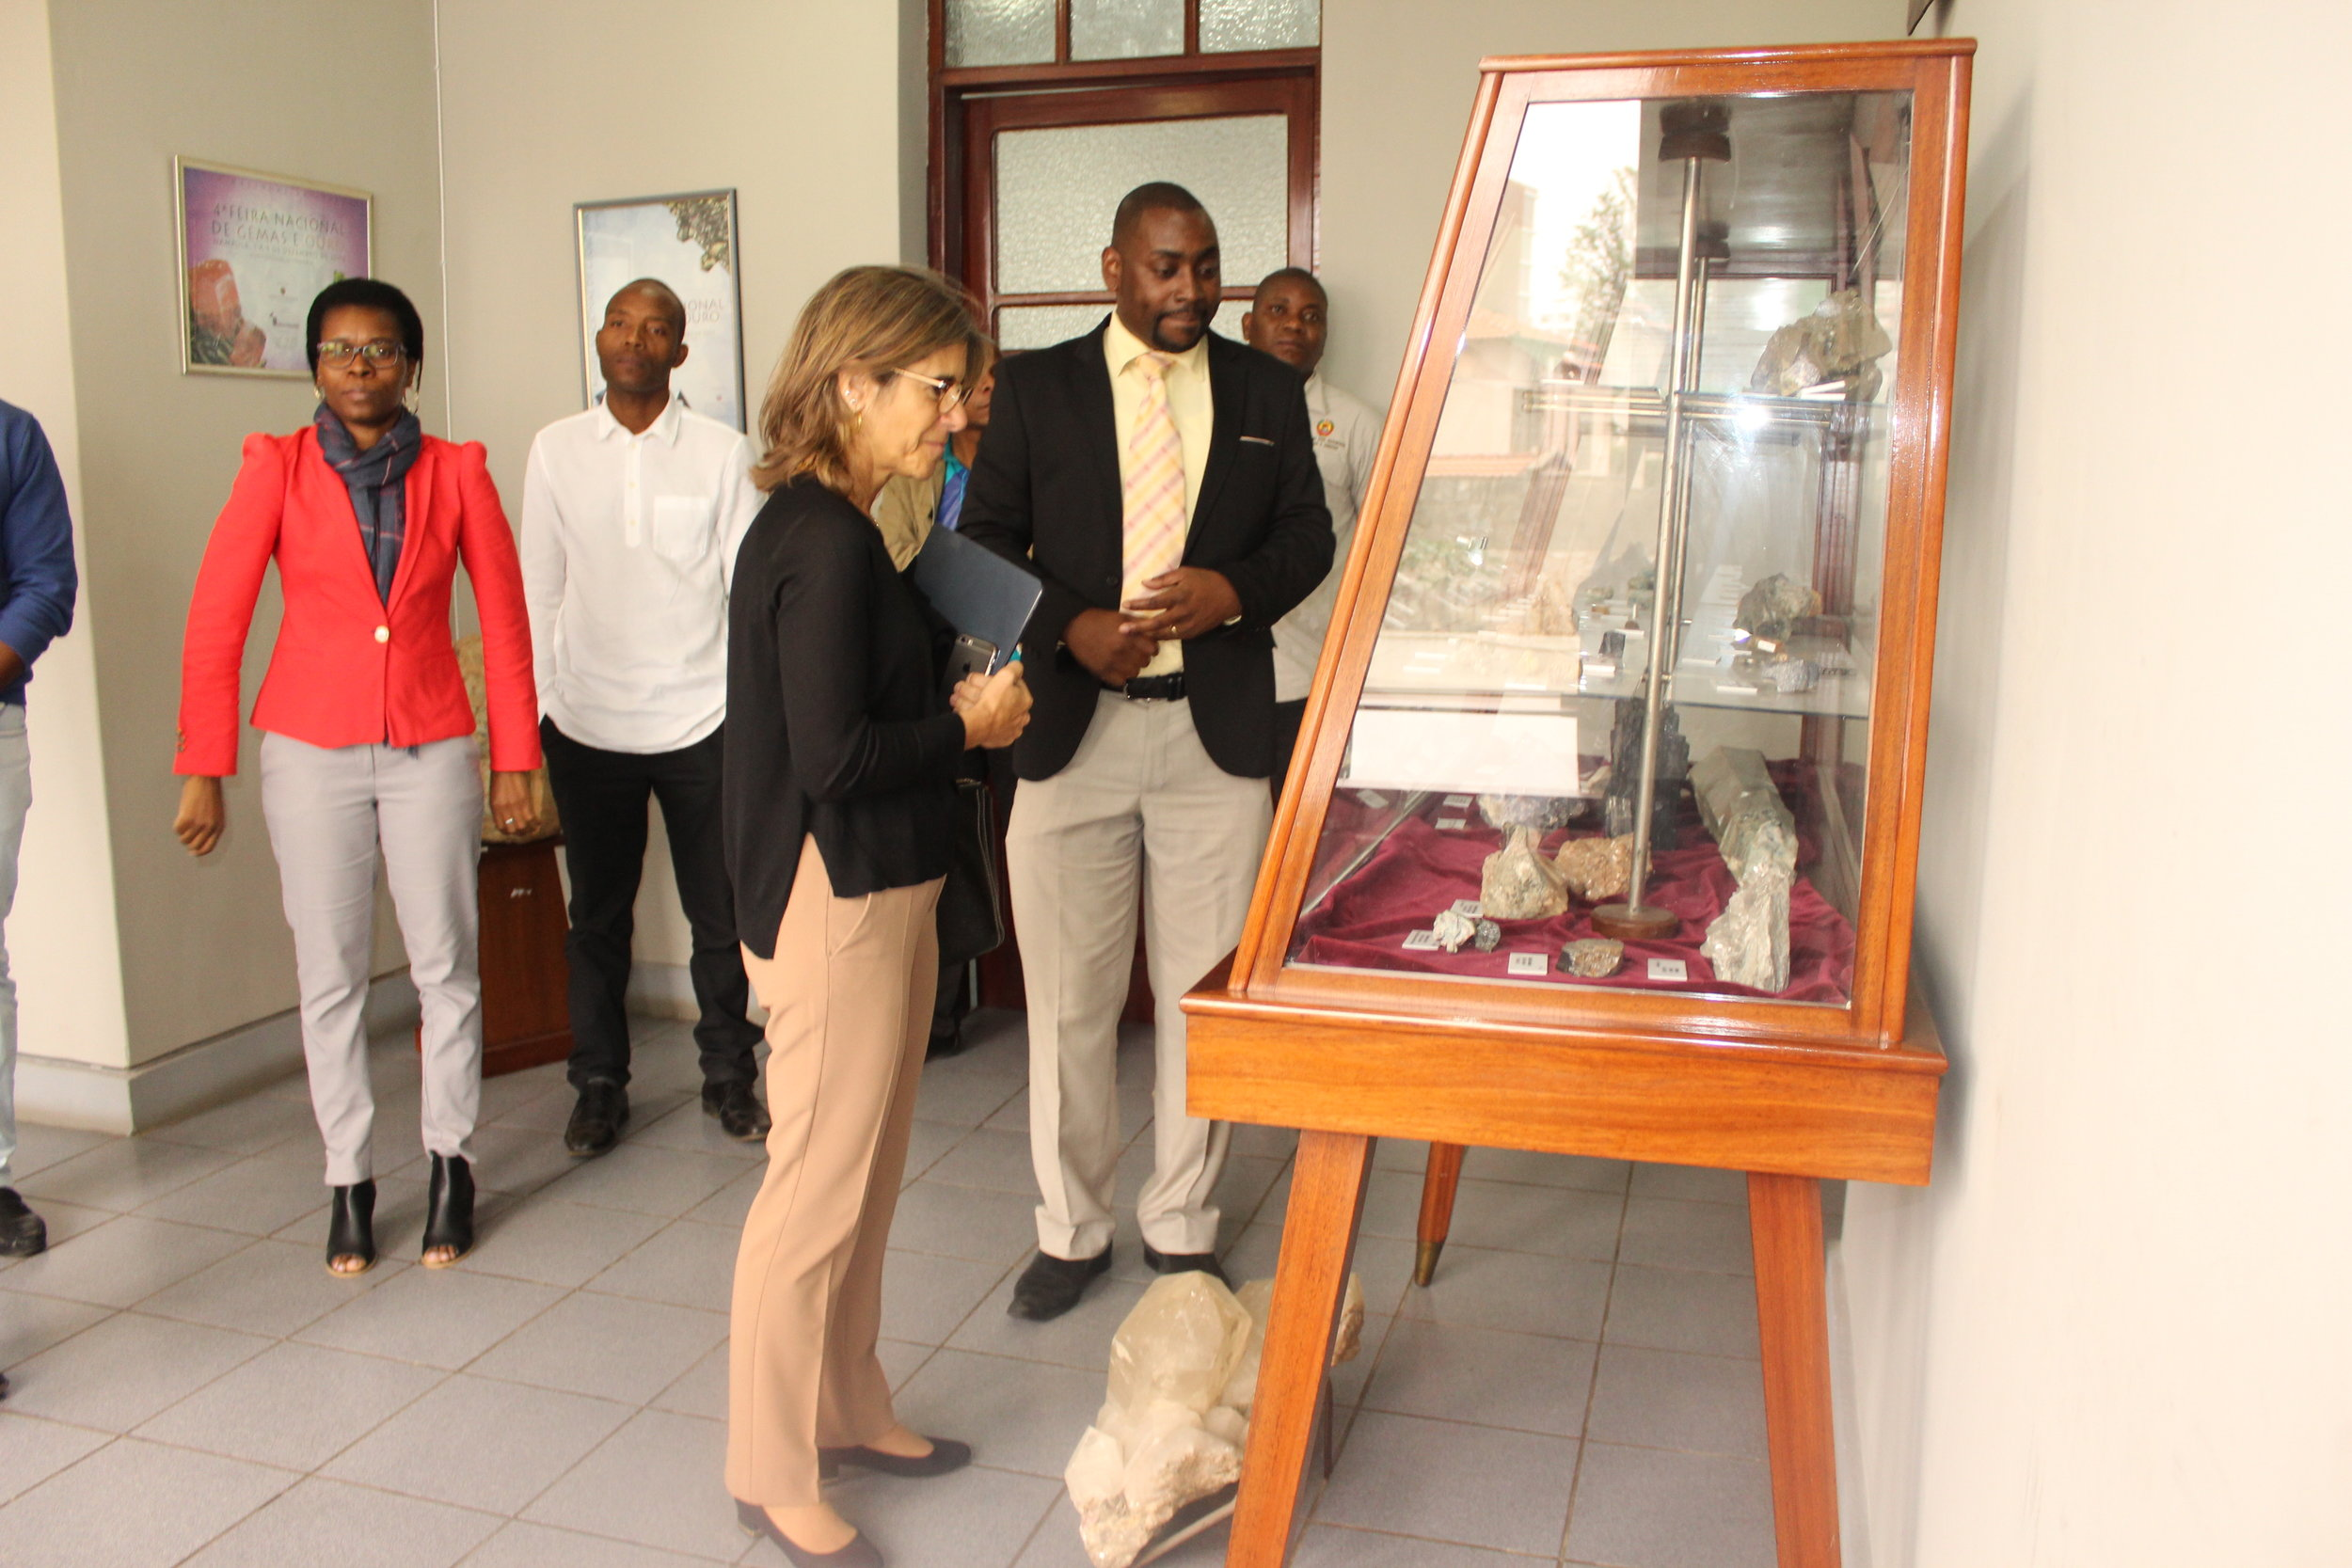 Dino Milisse shows the fossil collection of the National Geology Museum to Maria Fernando Rollo.